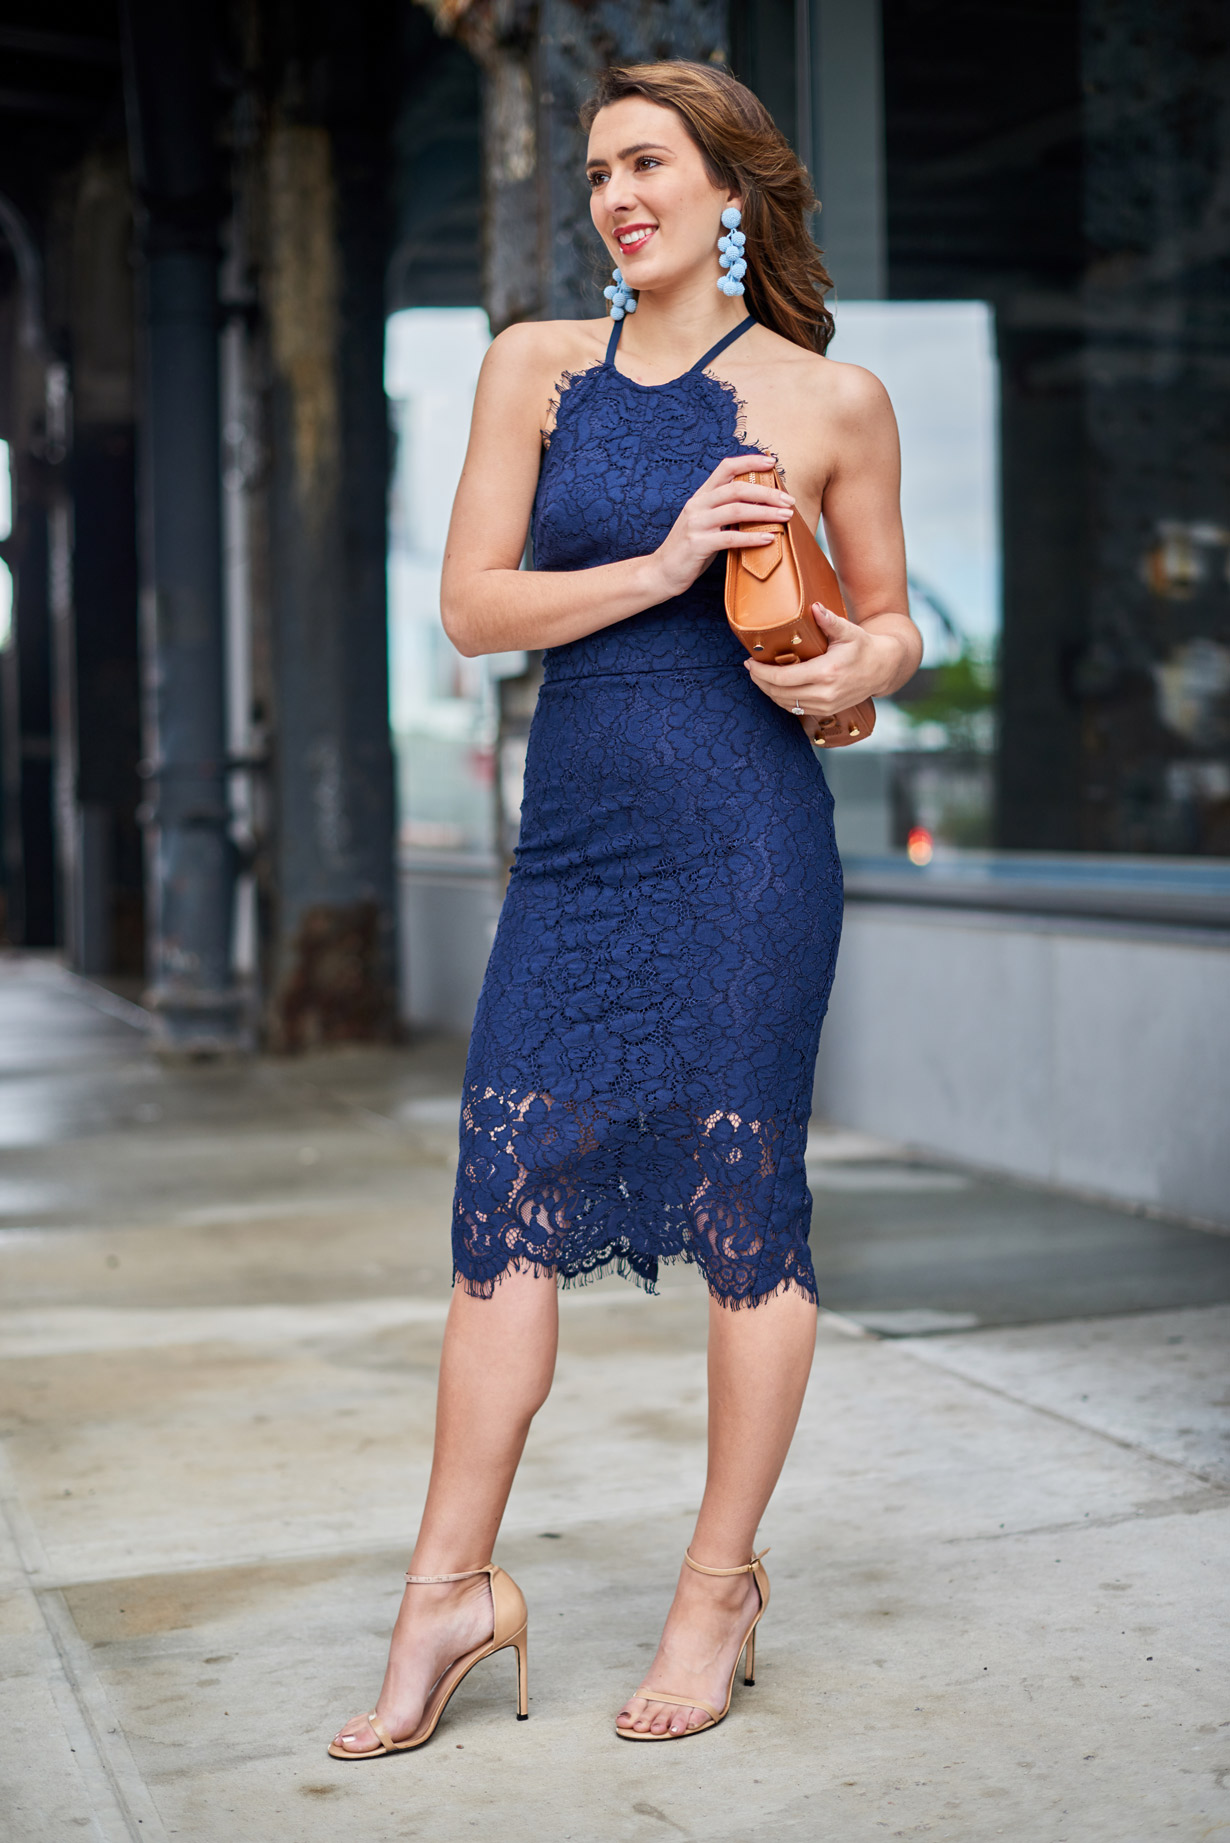 Navy cocktail dress what shoes